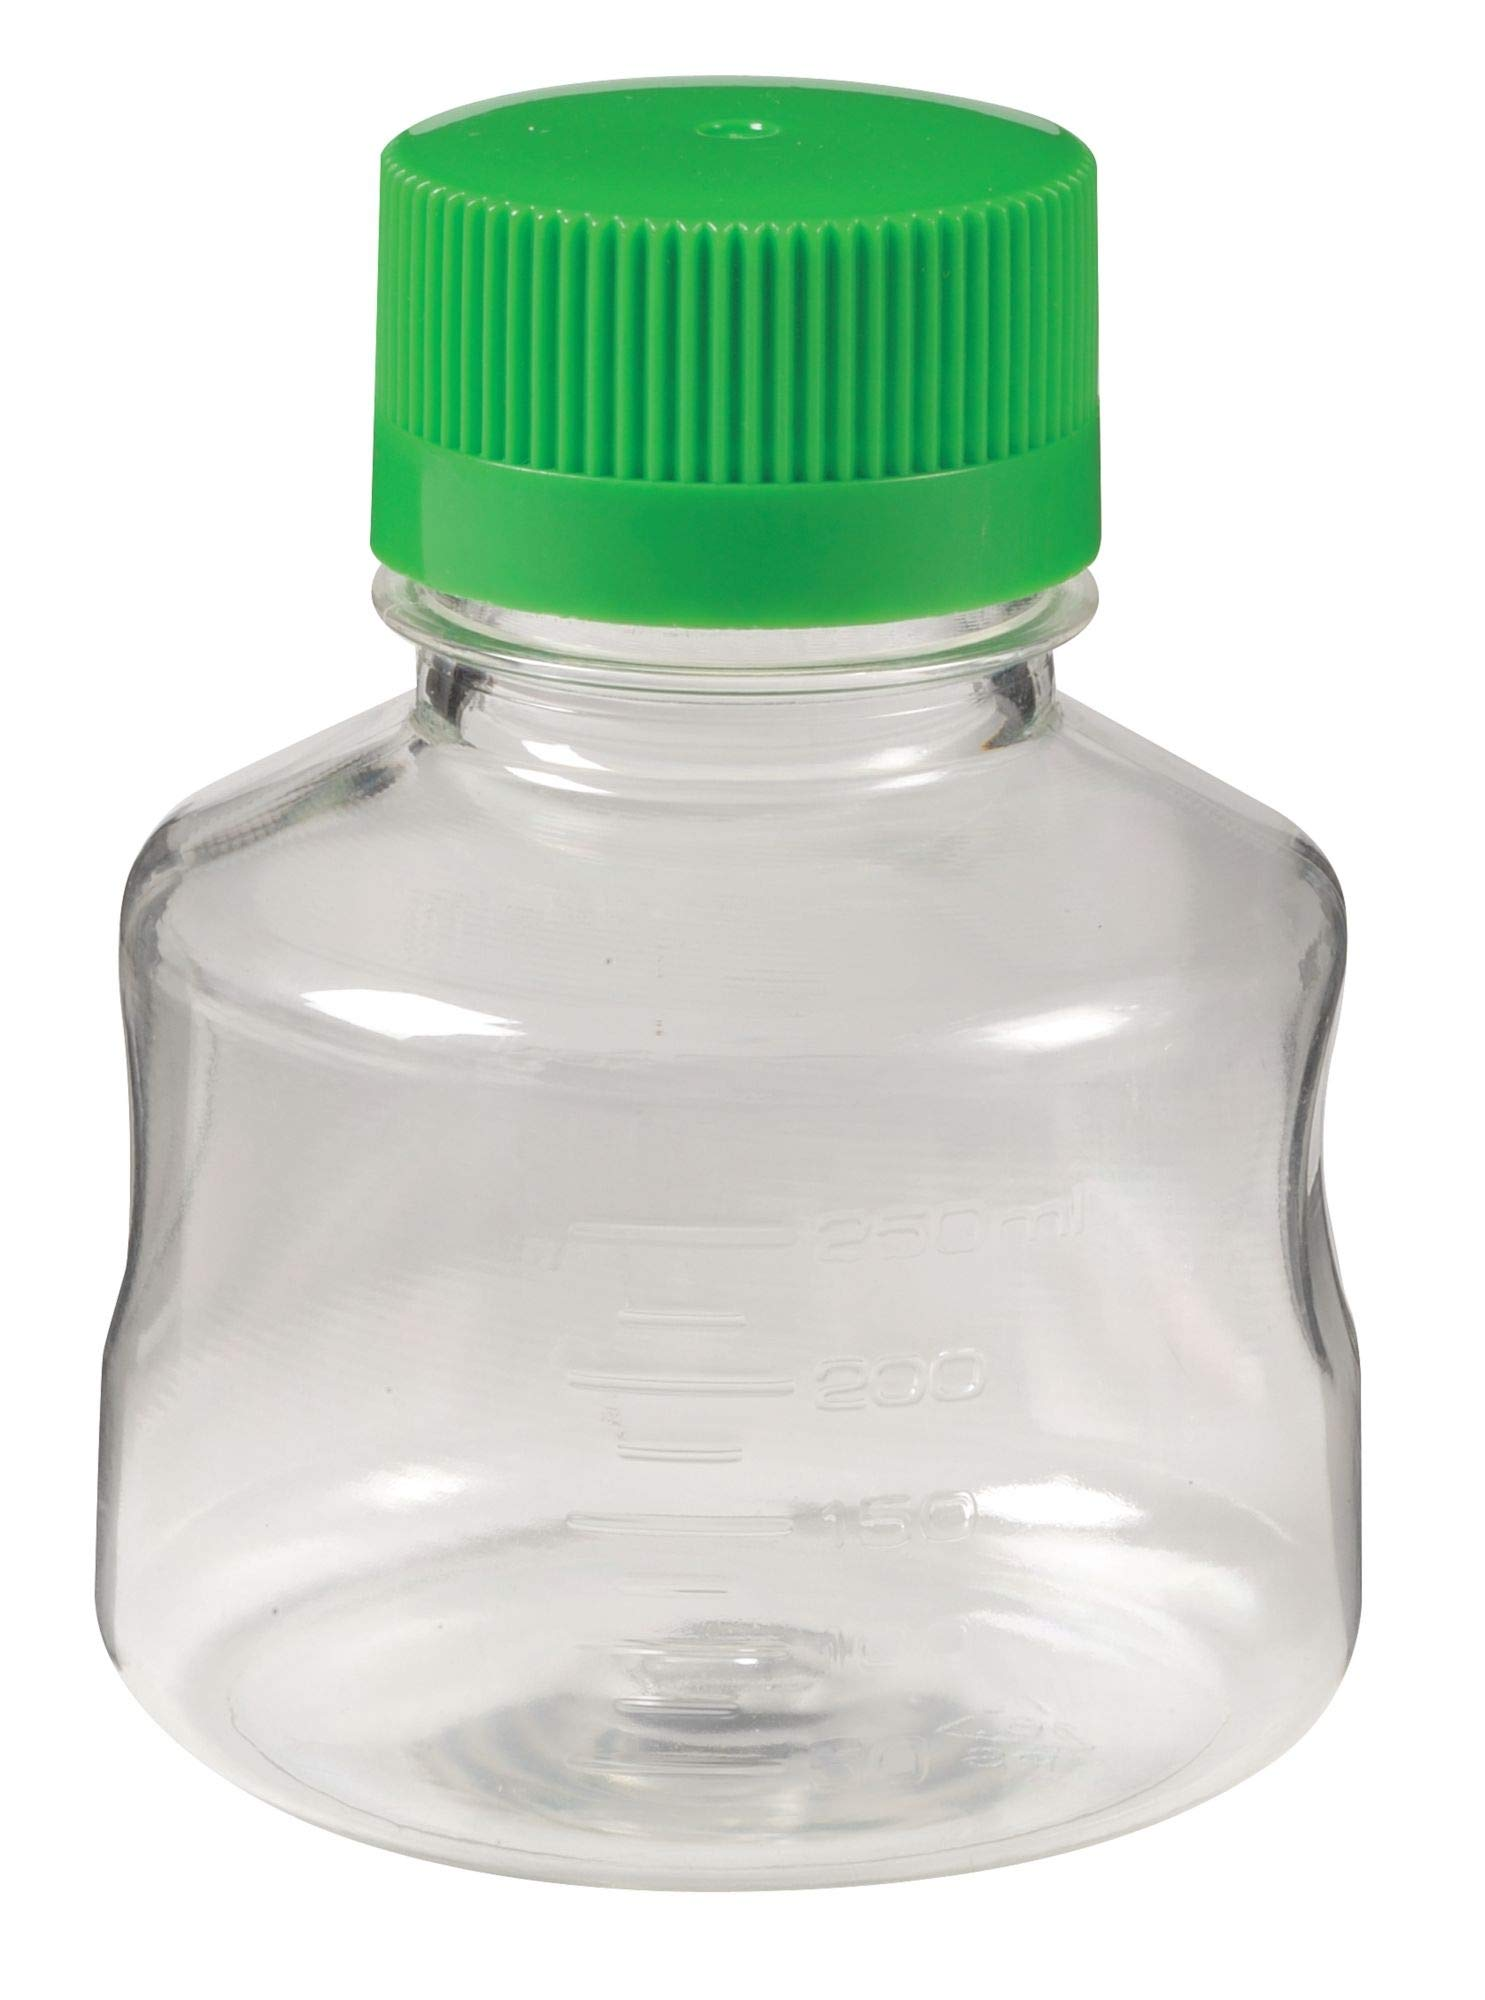 Lab Safety 250mL Solution Bottle, Wide Mouth, Polystyrene, PK 24 - 11L843